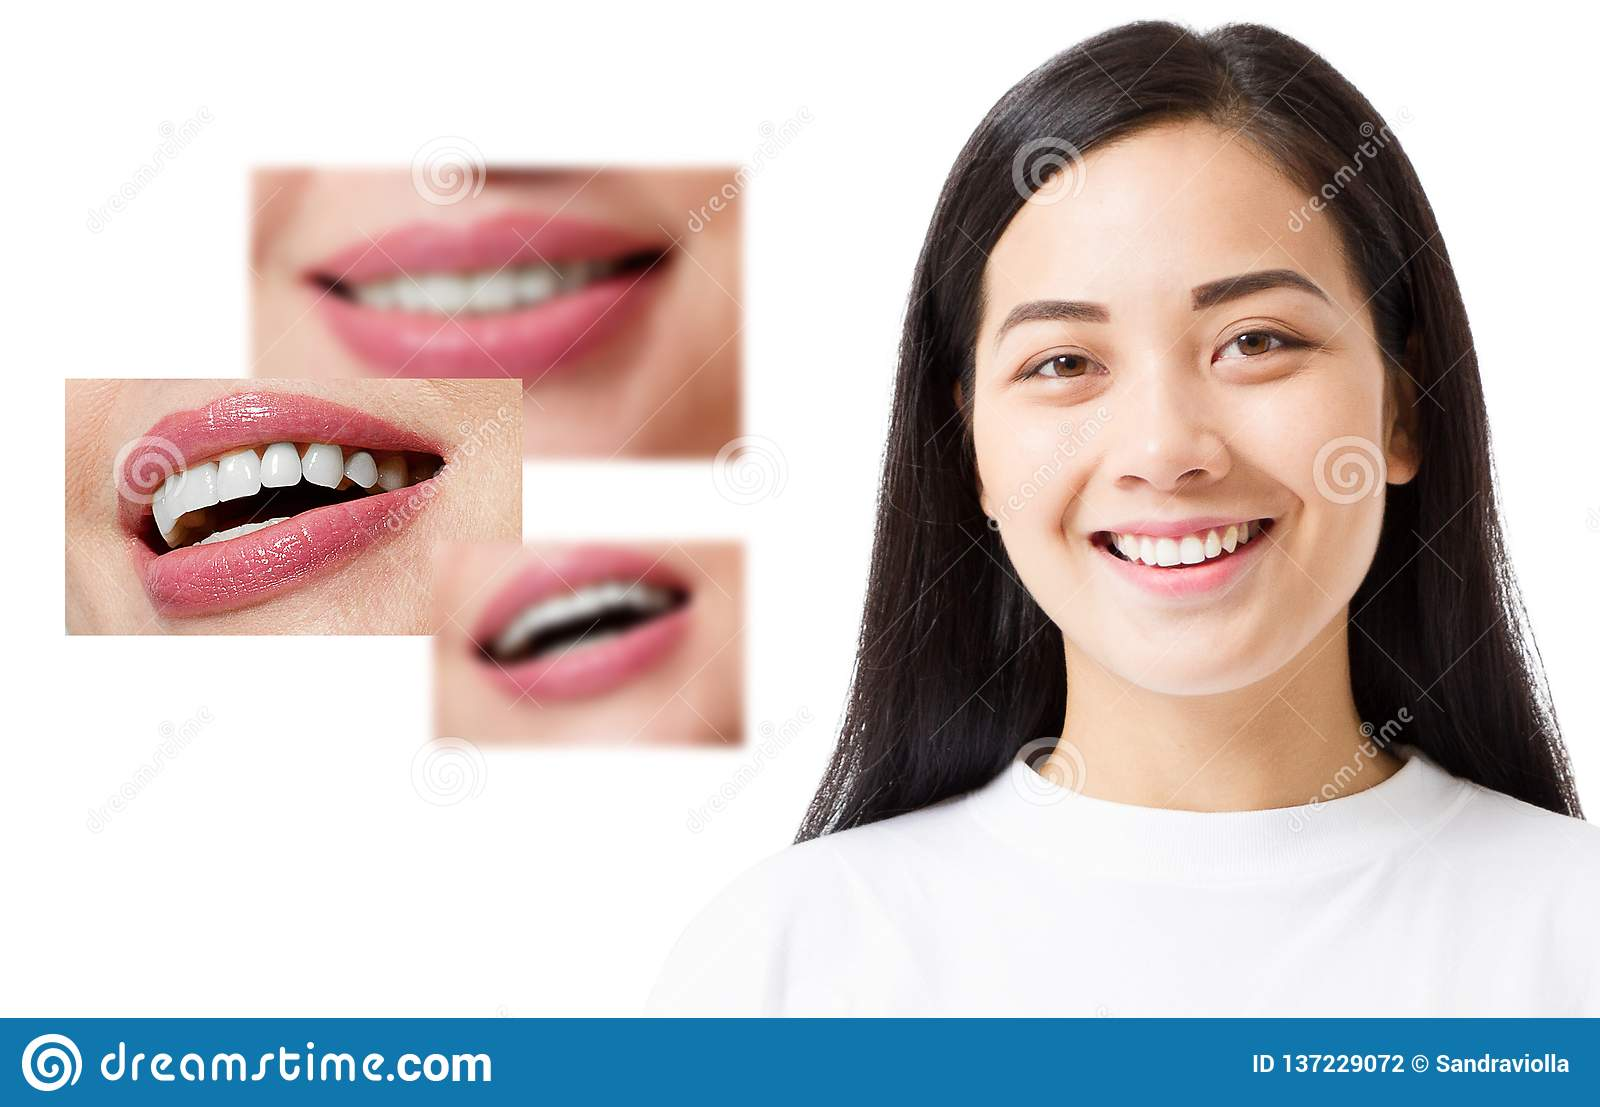 Collage of healthy smiling people. Beautiful asian young woman with white veneers and perfect smile. Tooth care dental medicine.